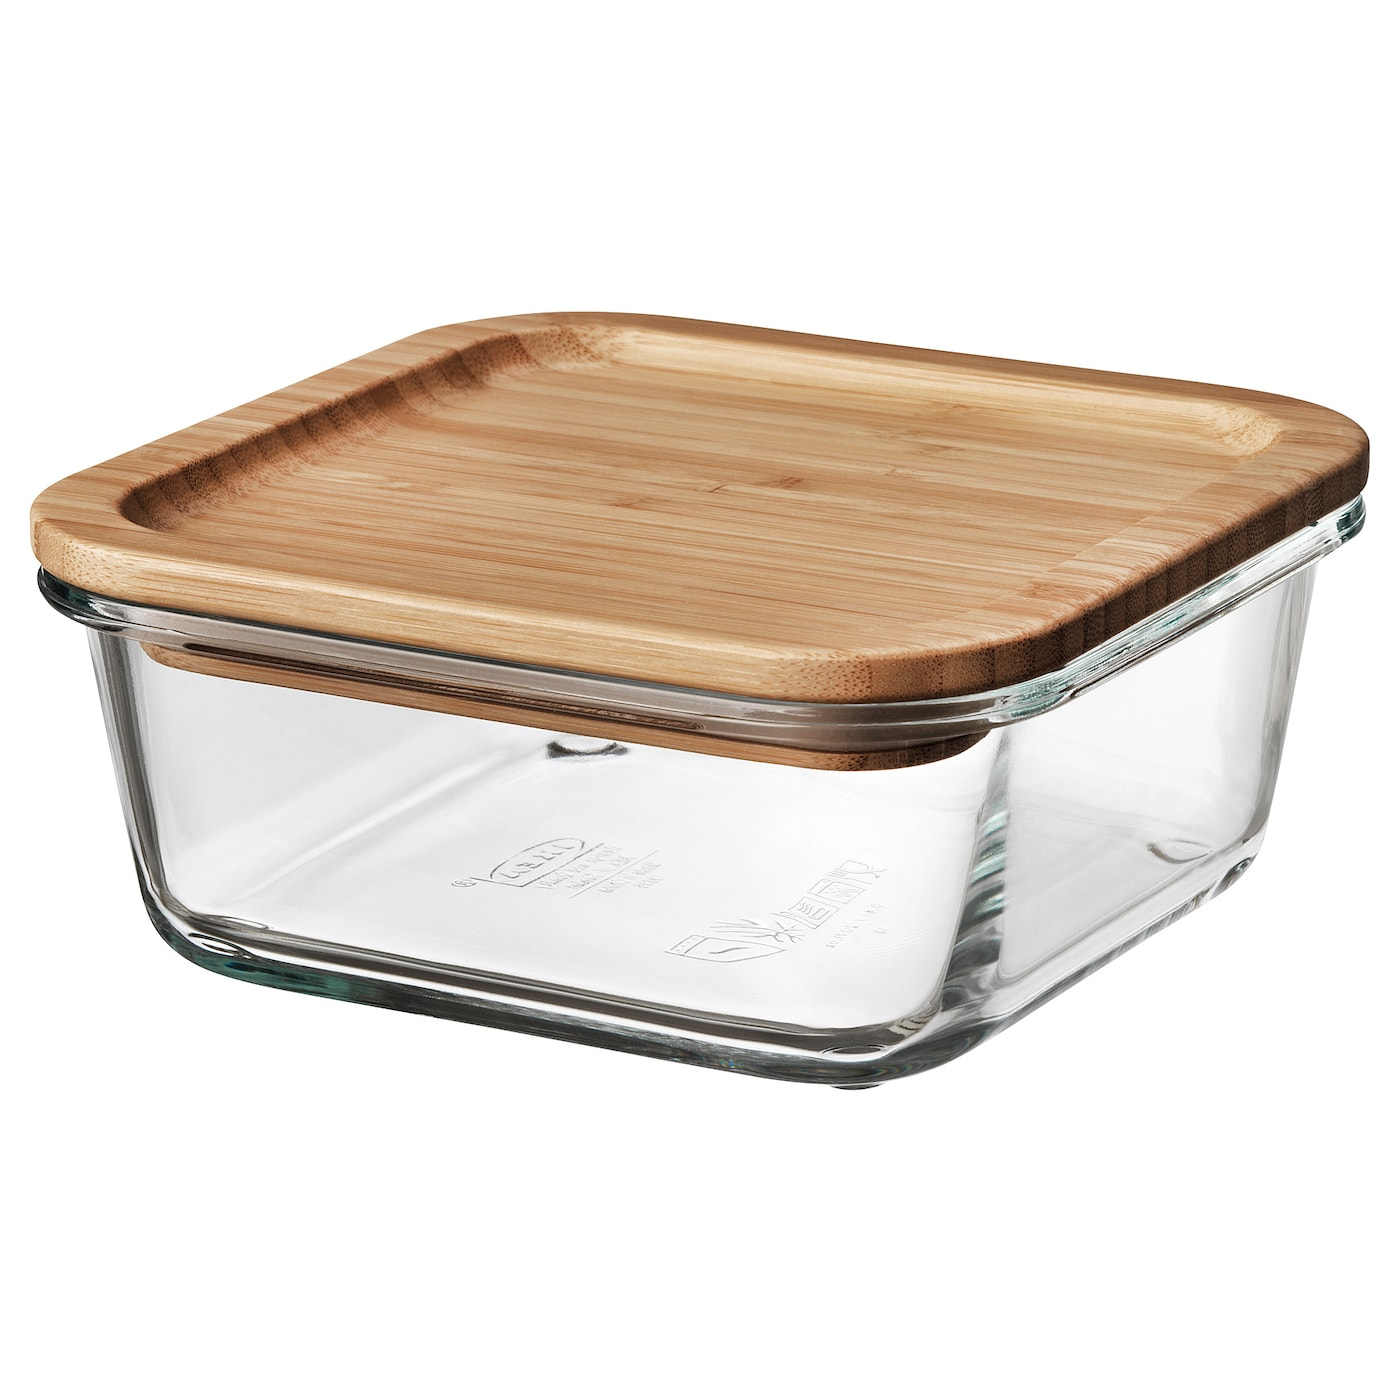 Ikea 365+ Food container with lid, square glass/bamboo20 oz (600 ml)